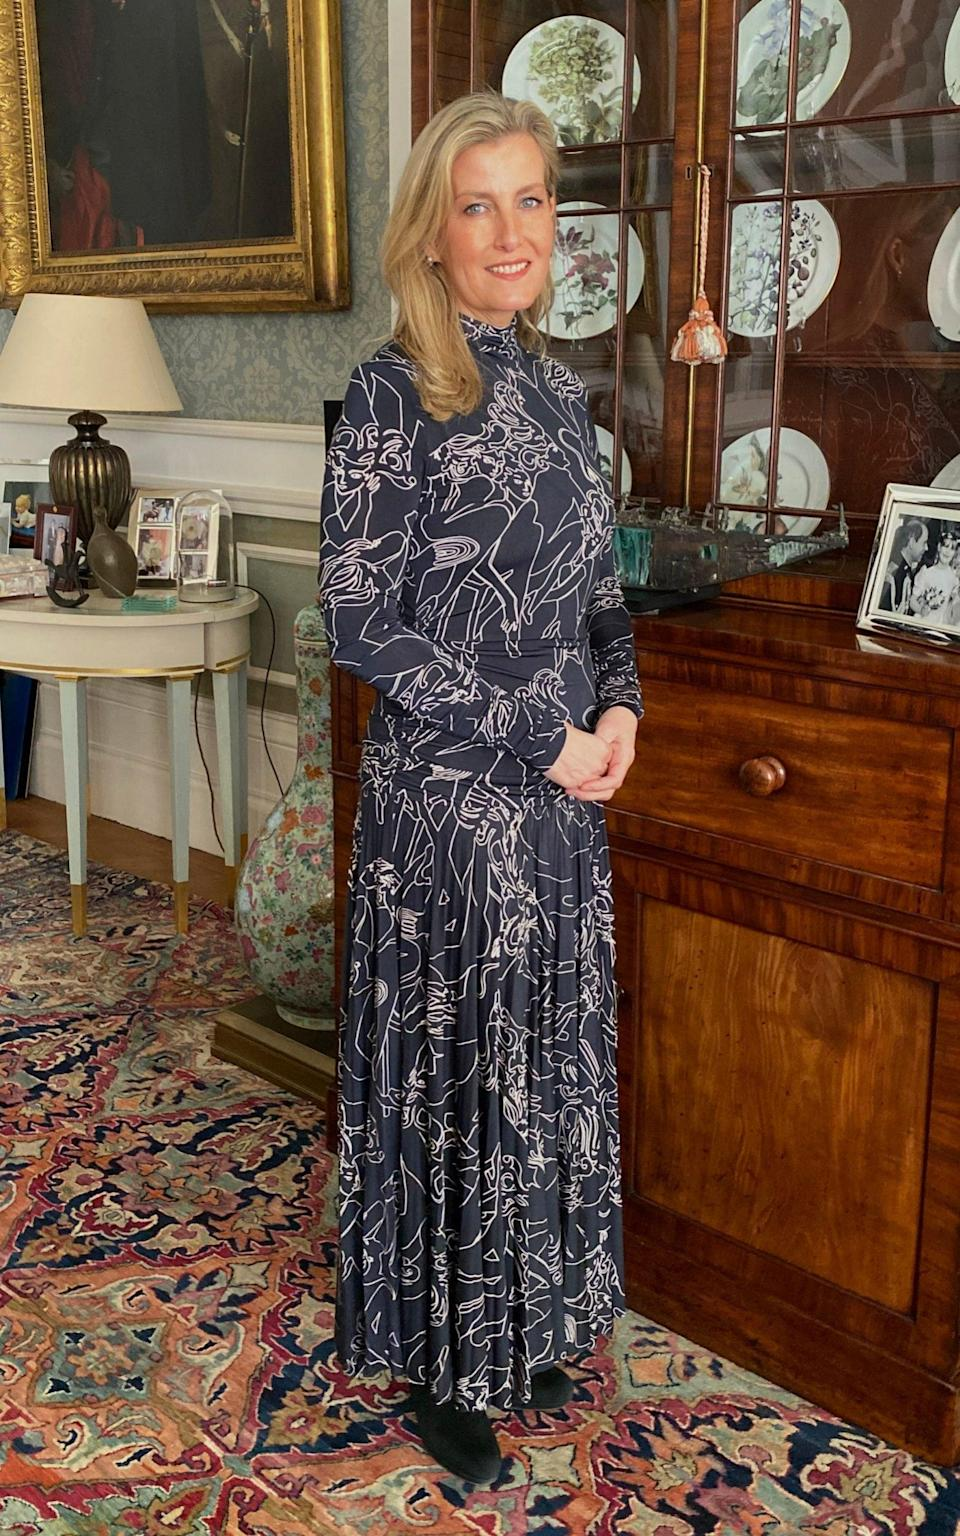 The Countess of Wessex wore Victoria Beckham for the event - Buckingham Palace